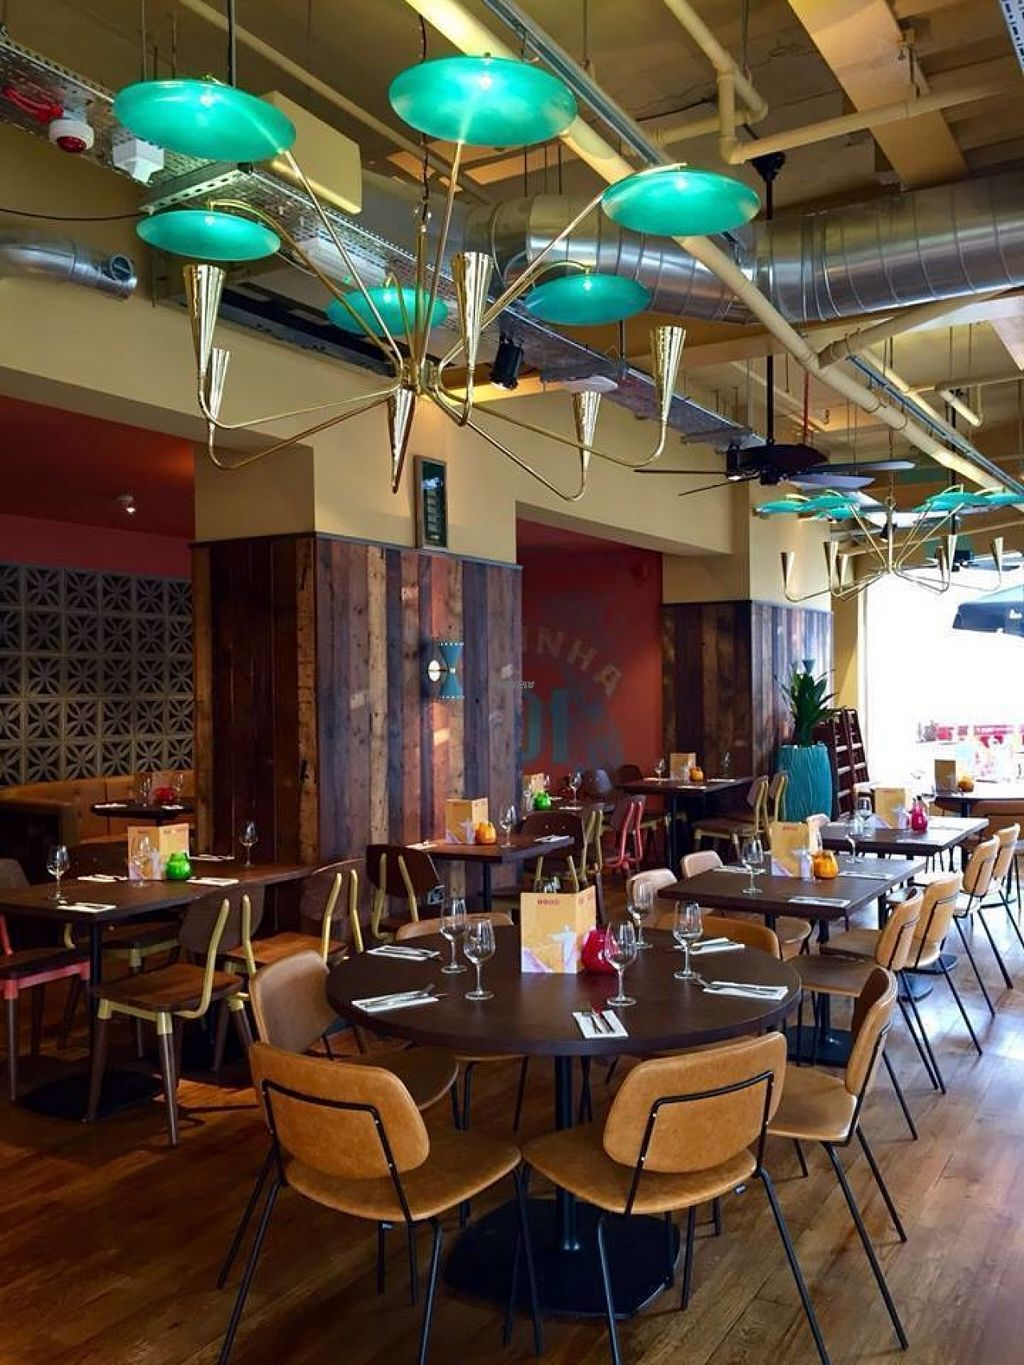 "Photo of Las Iguanas - Spitalfields  by <a href=""/members/profile/Meaks"">Meaks</a> <br/>Las Iguanas - Spitalfields <br/> August 4, 2016  - <a href='/contact/abuse/image/77979/165284'>Report</a>"